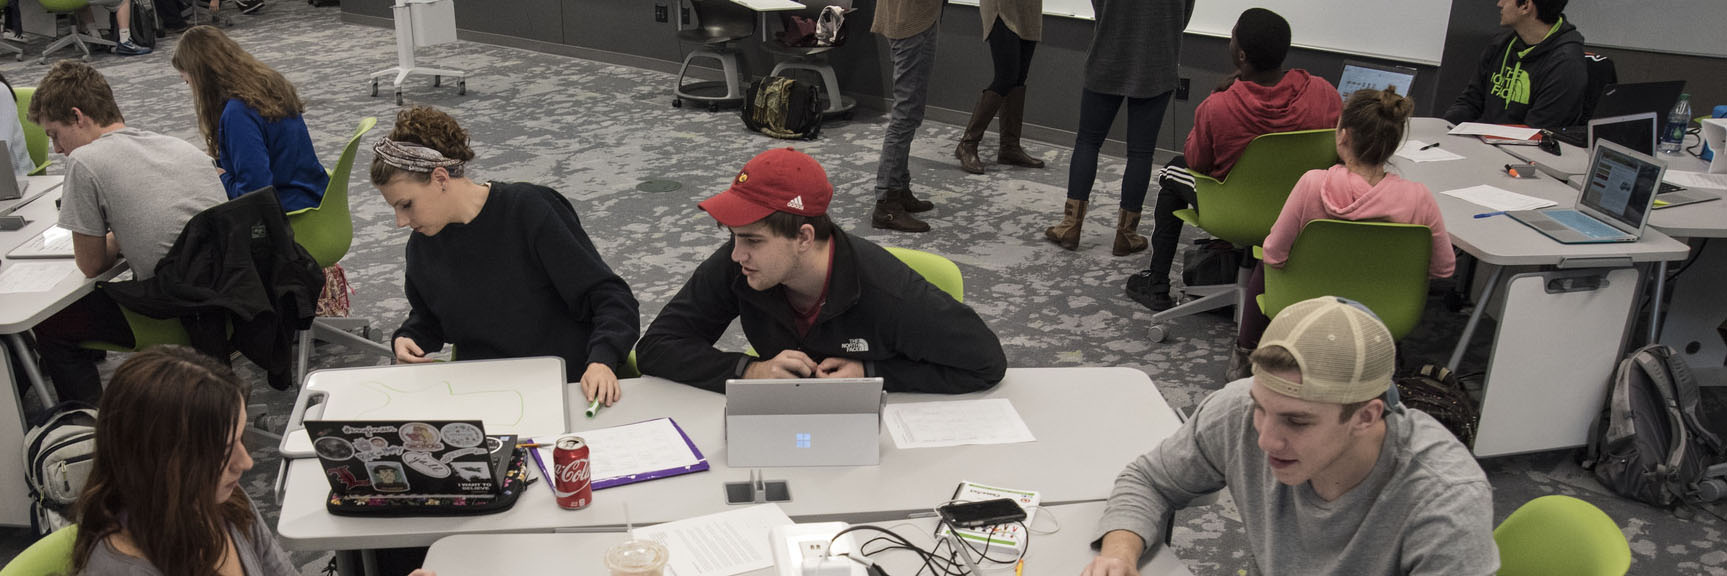 Active Learning is anything course-related that all students in a class section